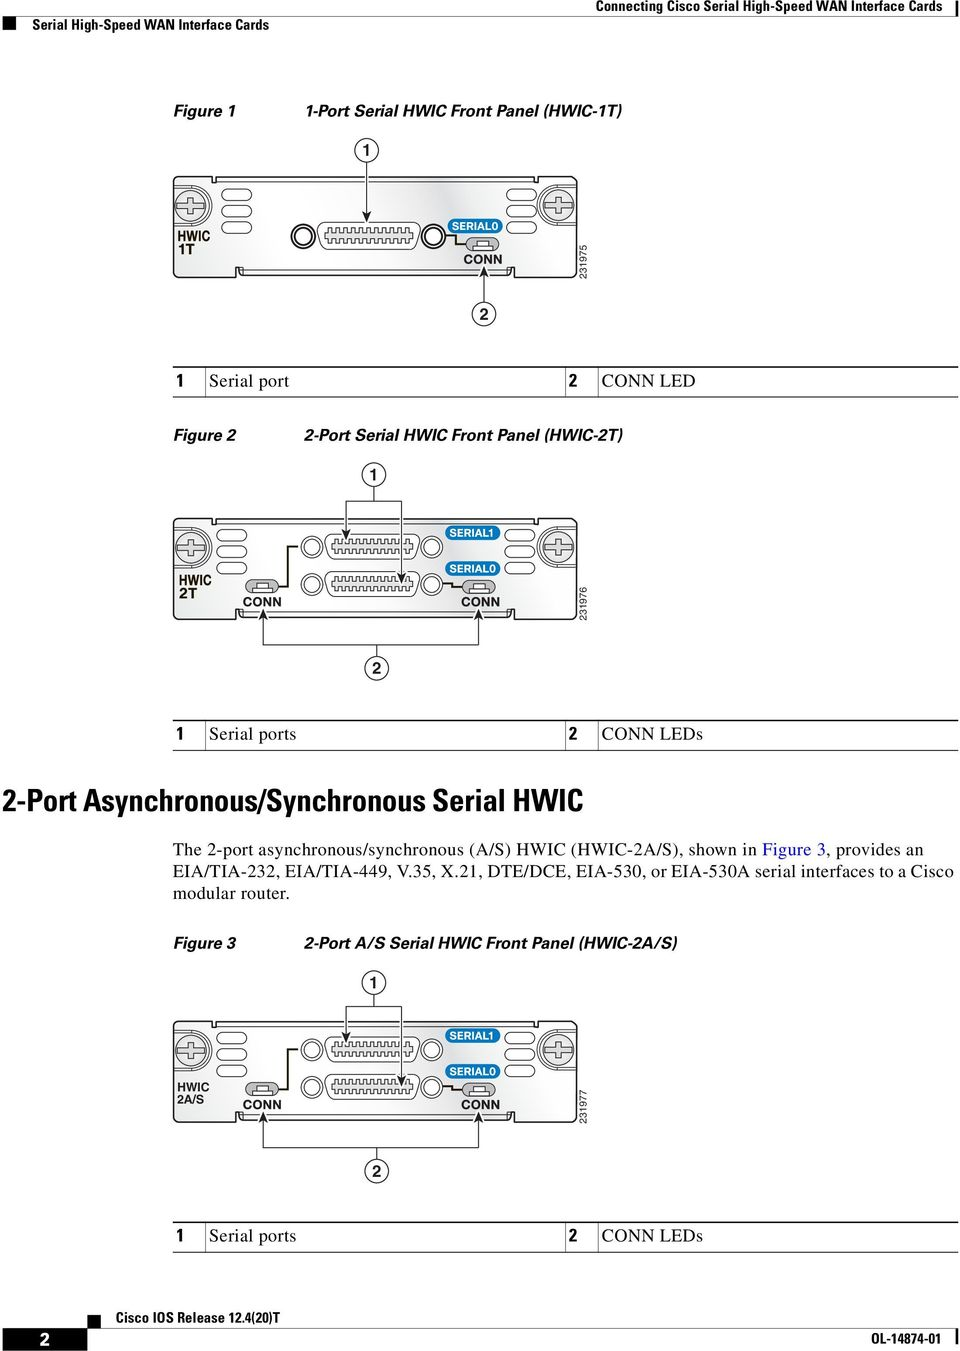 The -port asynchronous/synchronous (A/S) HWIC (HWIC-A/S), shown in Figure 3, provides an EIA/TIA-3, EIA/TIA-449, V.35, X.